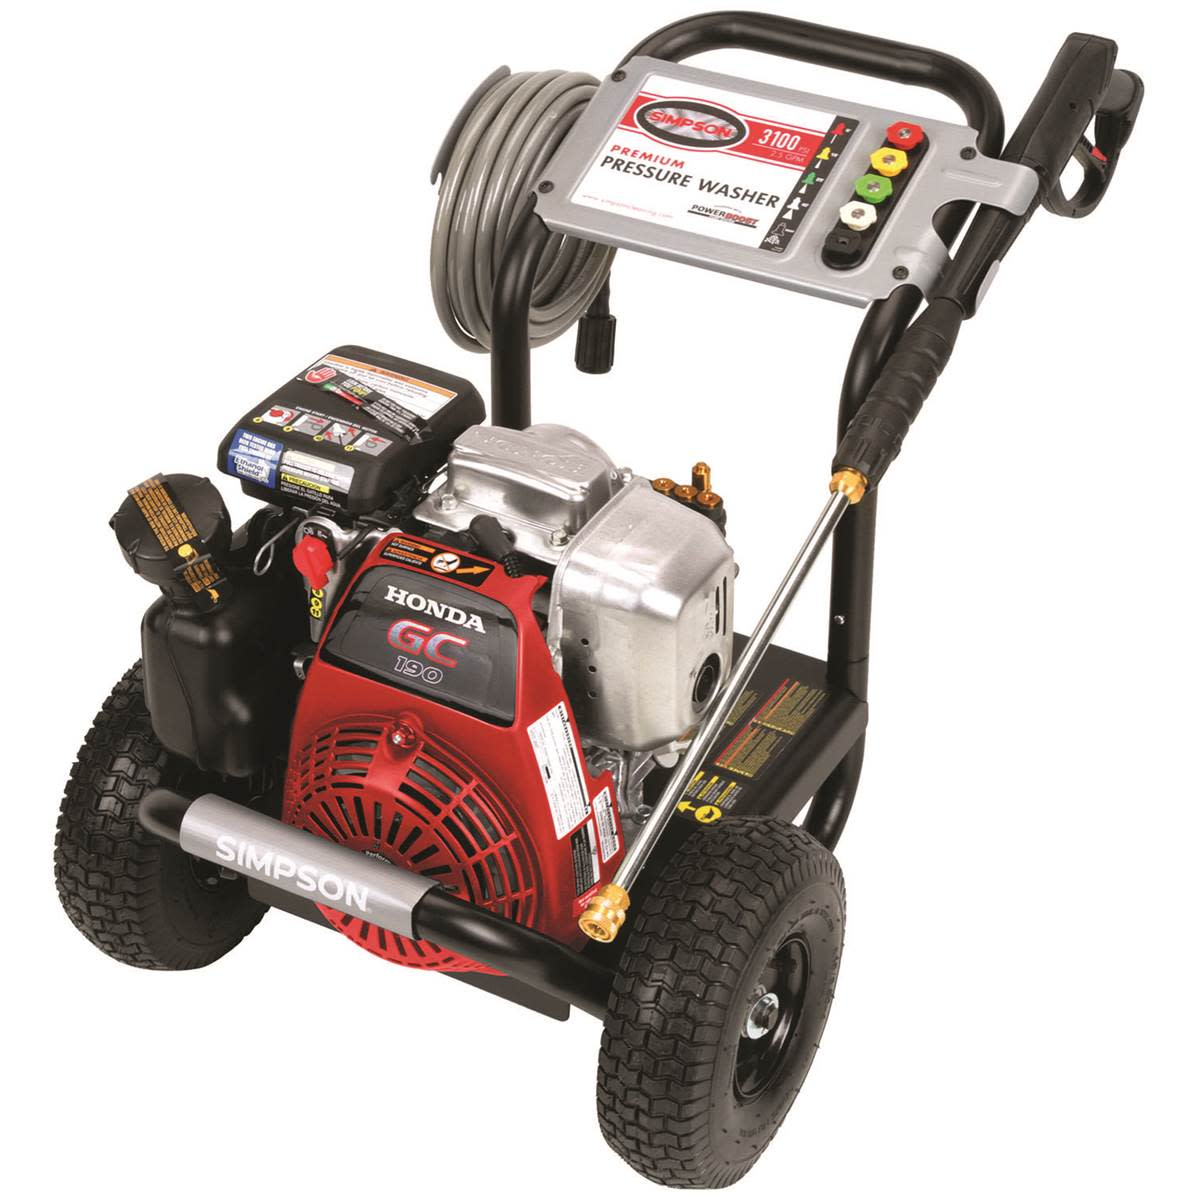 Simpson MegaShot Power Washer Review